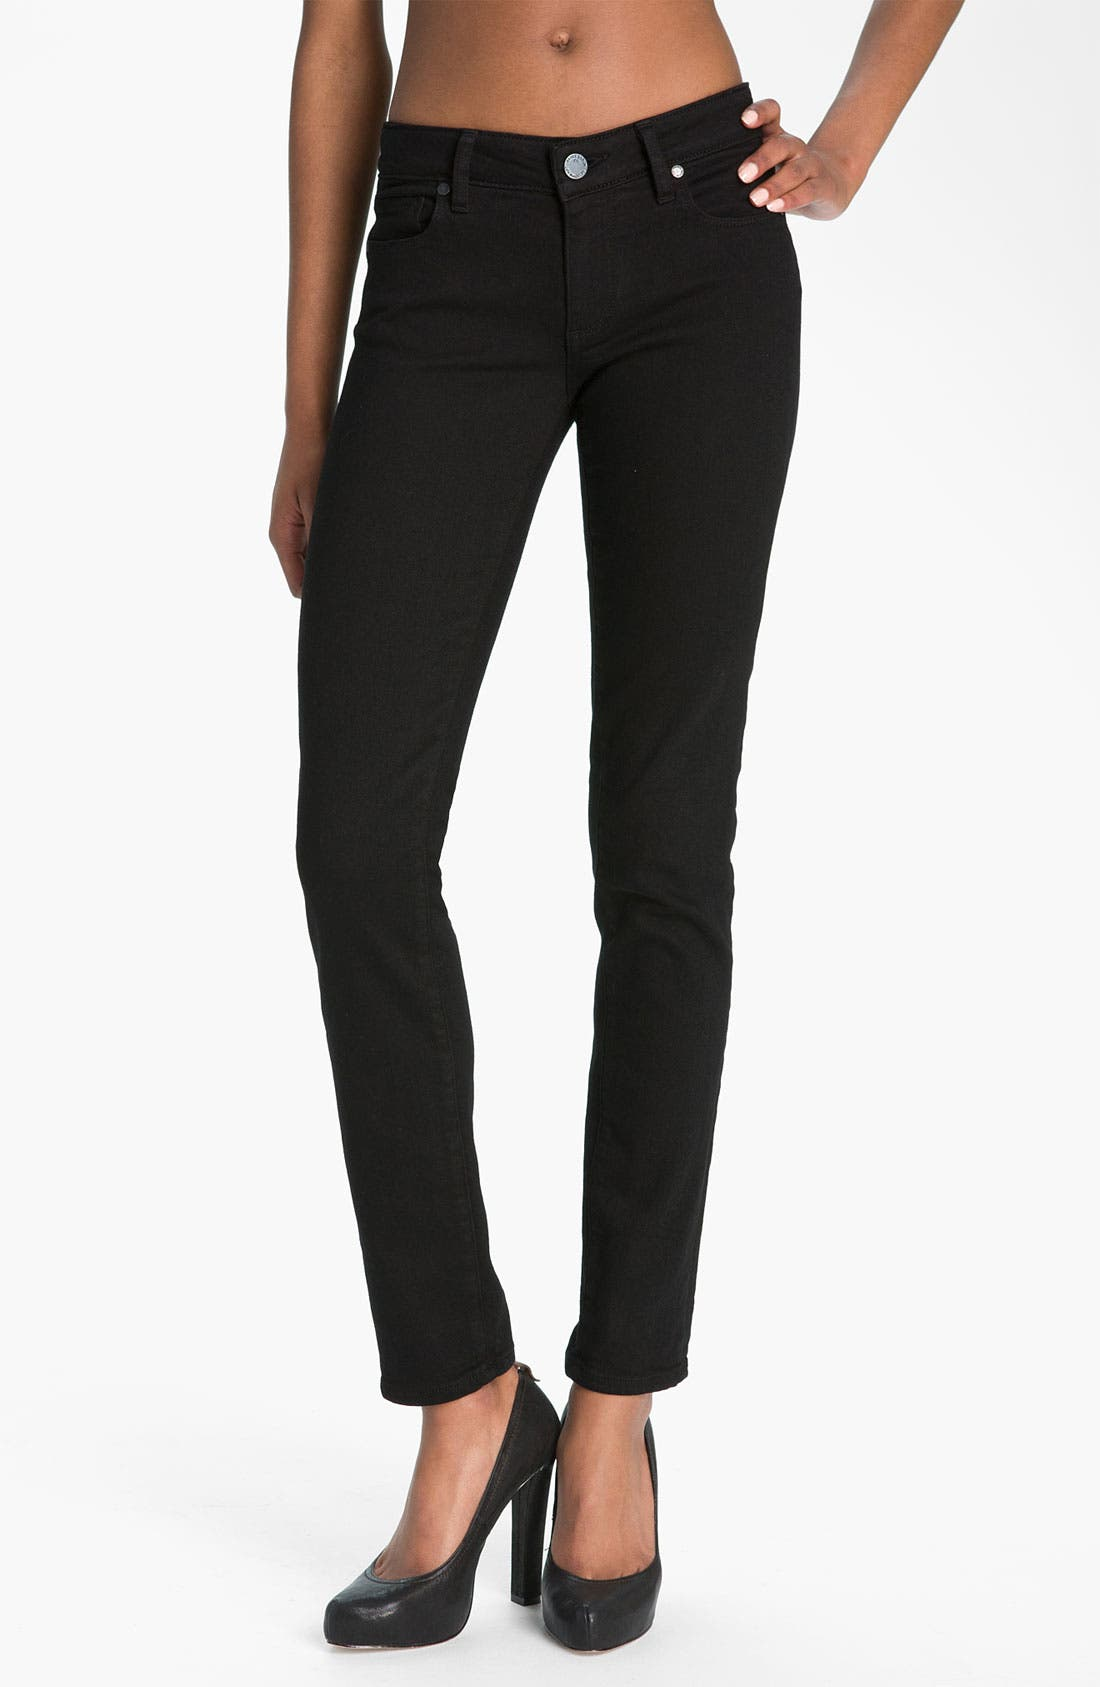 Alternate Image 1 Selected - Paige Denim 'Skyline' Skinny Stretch Jeans (Black Ink)